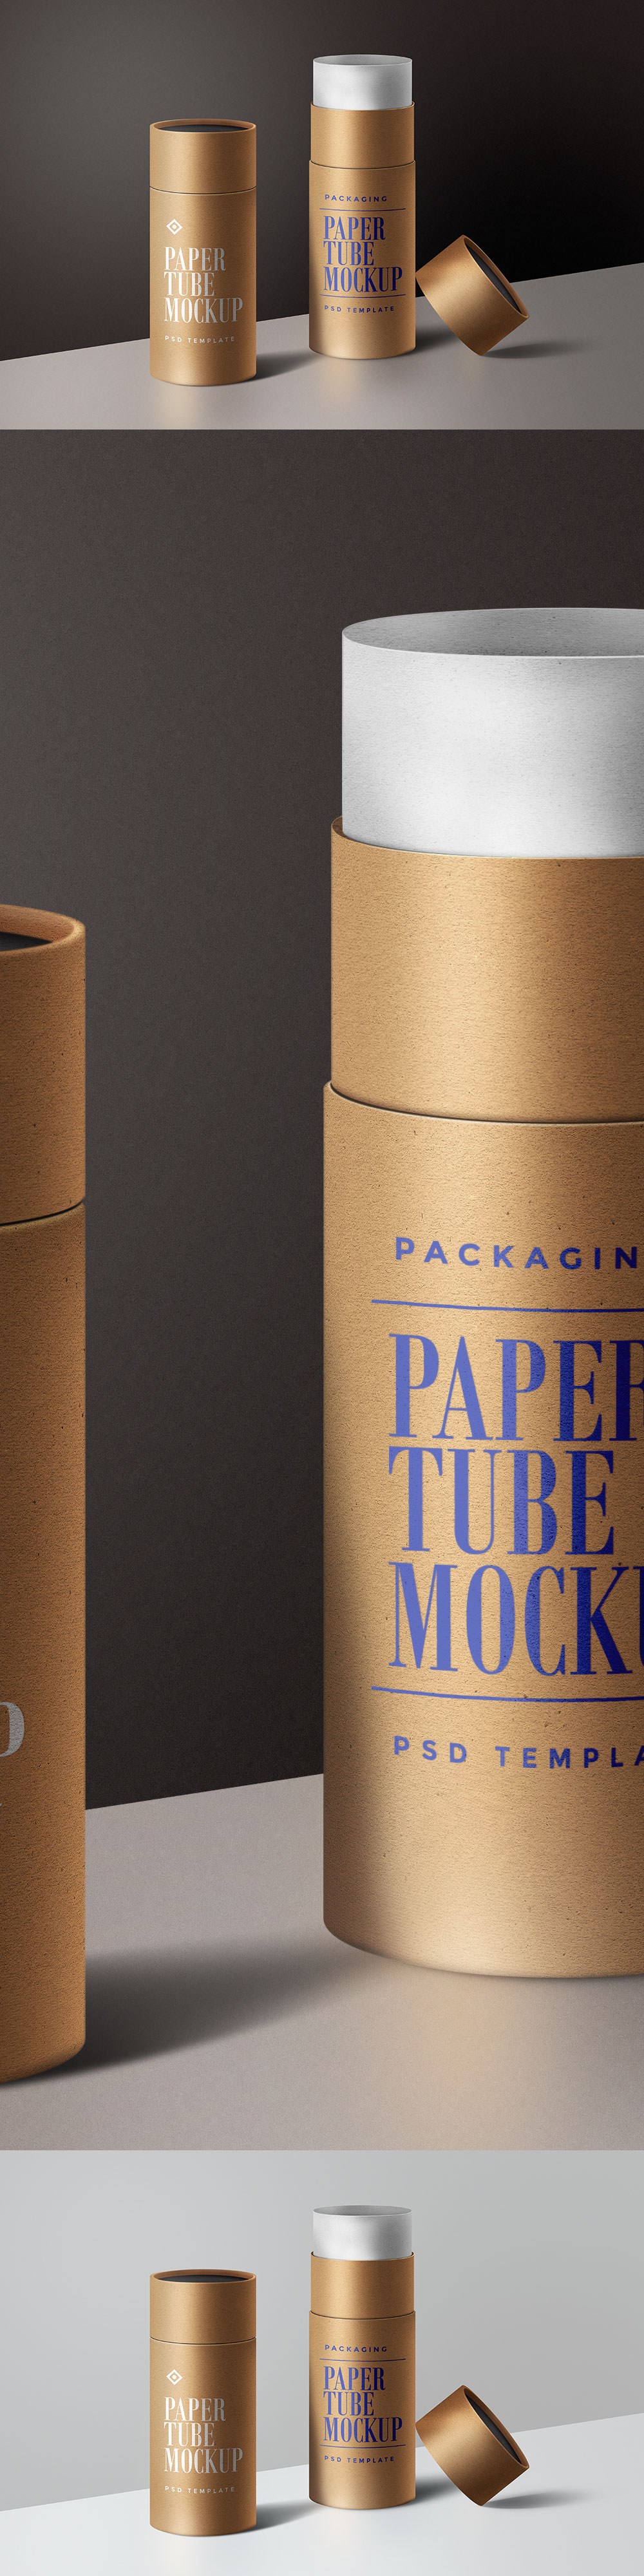 Paper Tube Packaging Mockup